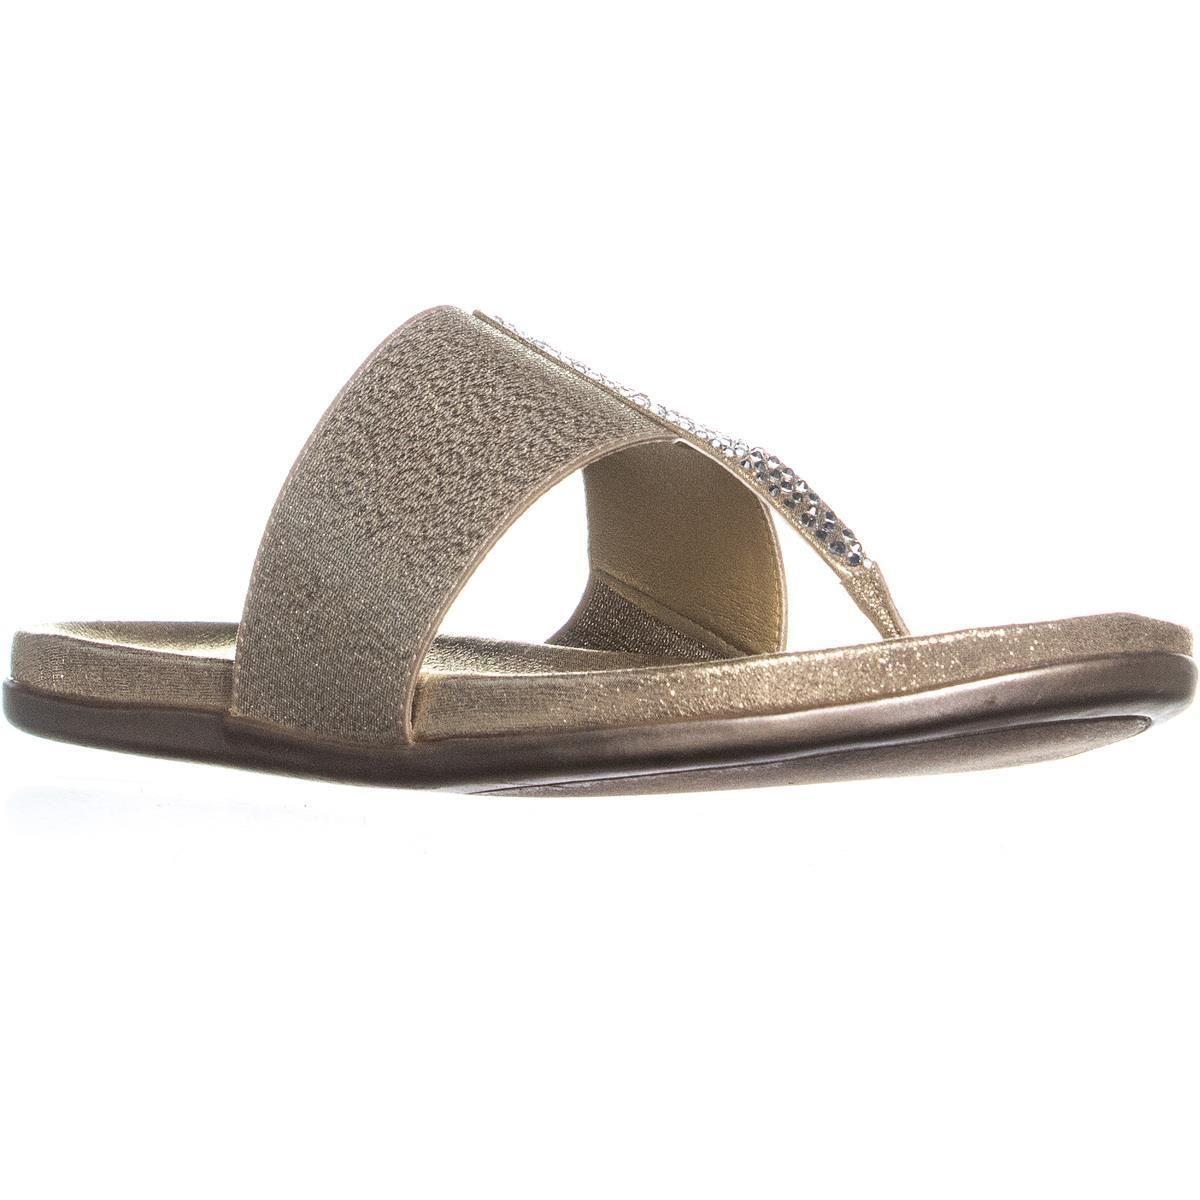 379eda9e2887 Lyst - Kenneth Cole Reaction Slim Stand Thong Sandals in Metallic